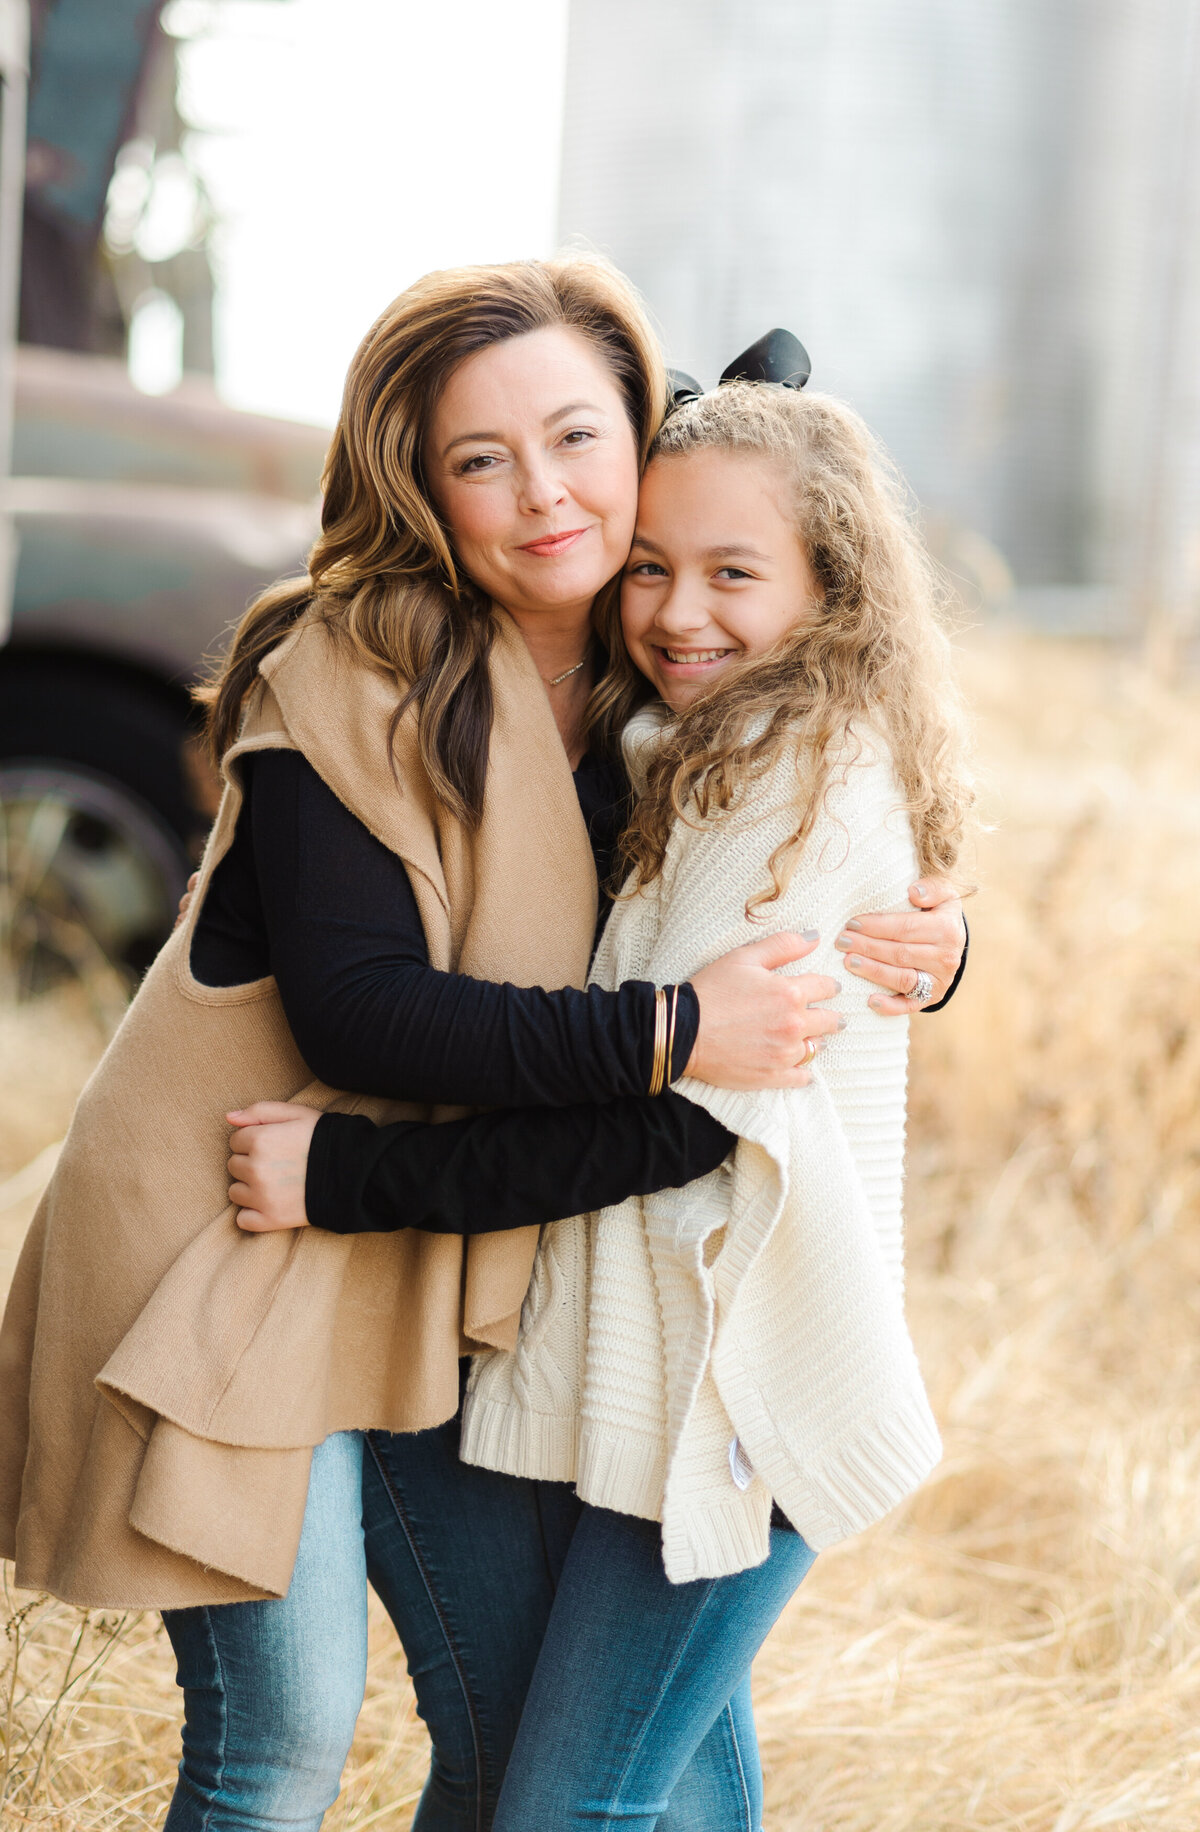 family-photographer-virginia-beach-tonya-volk-photography-12